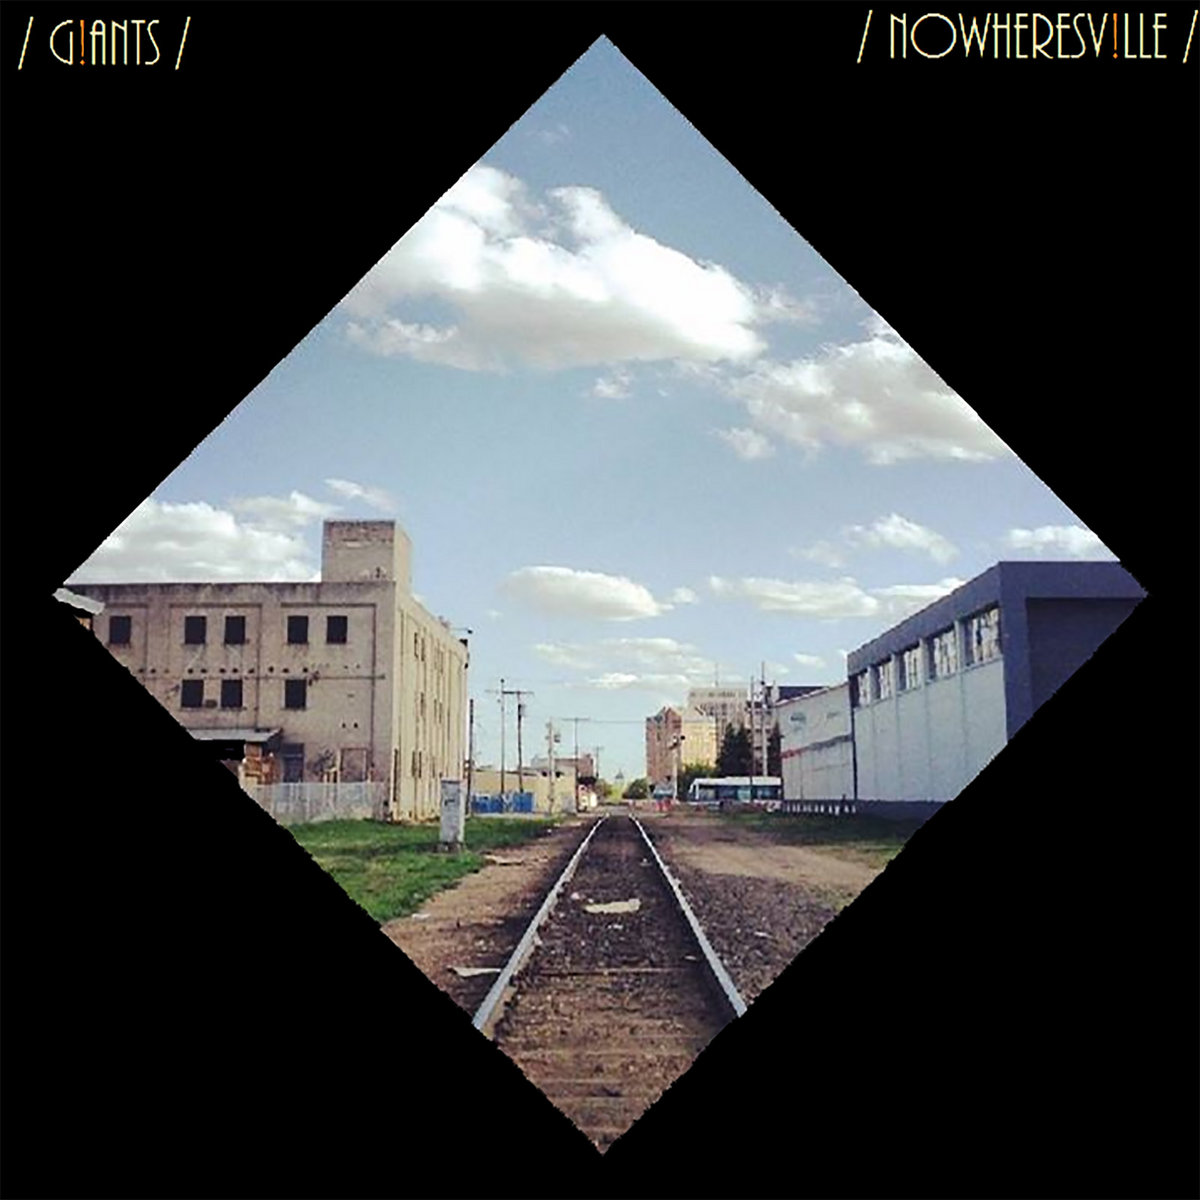 Giants - Nowheresville [EP] (2016)